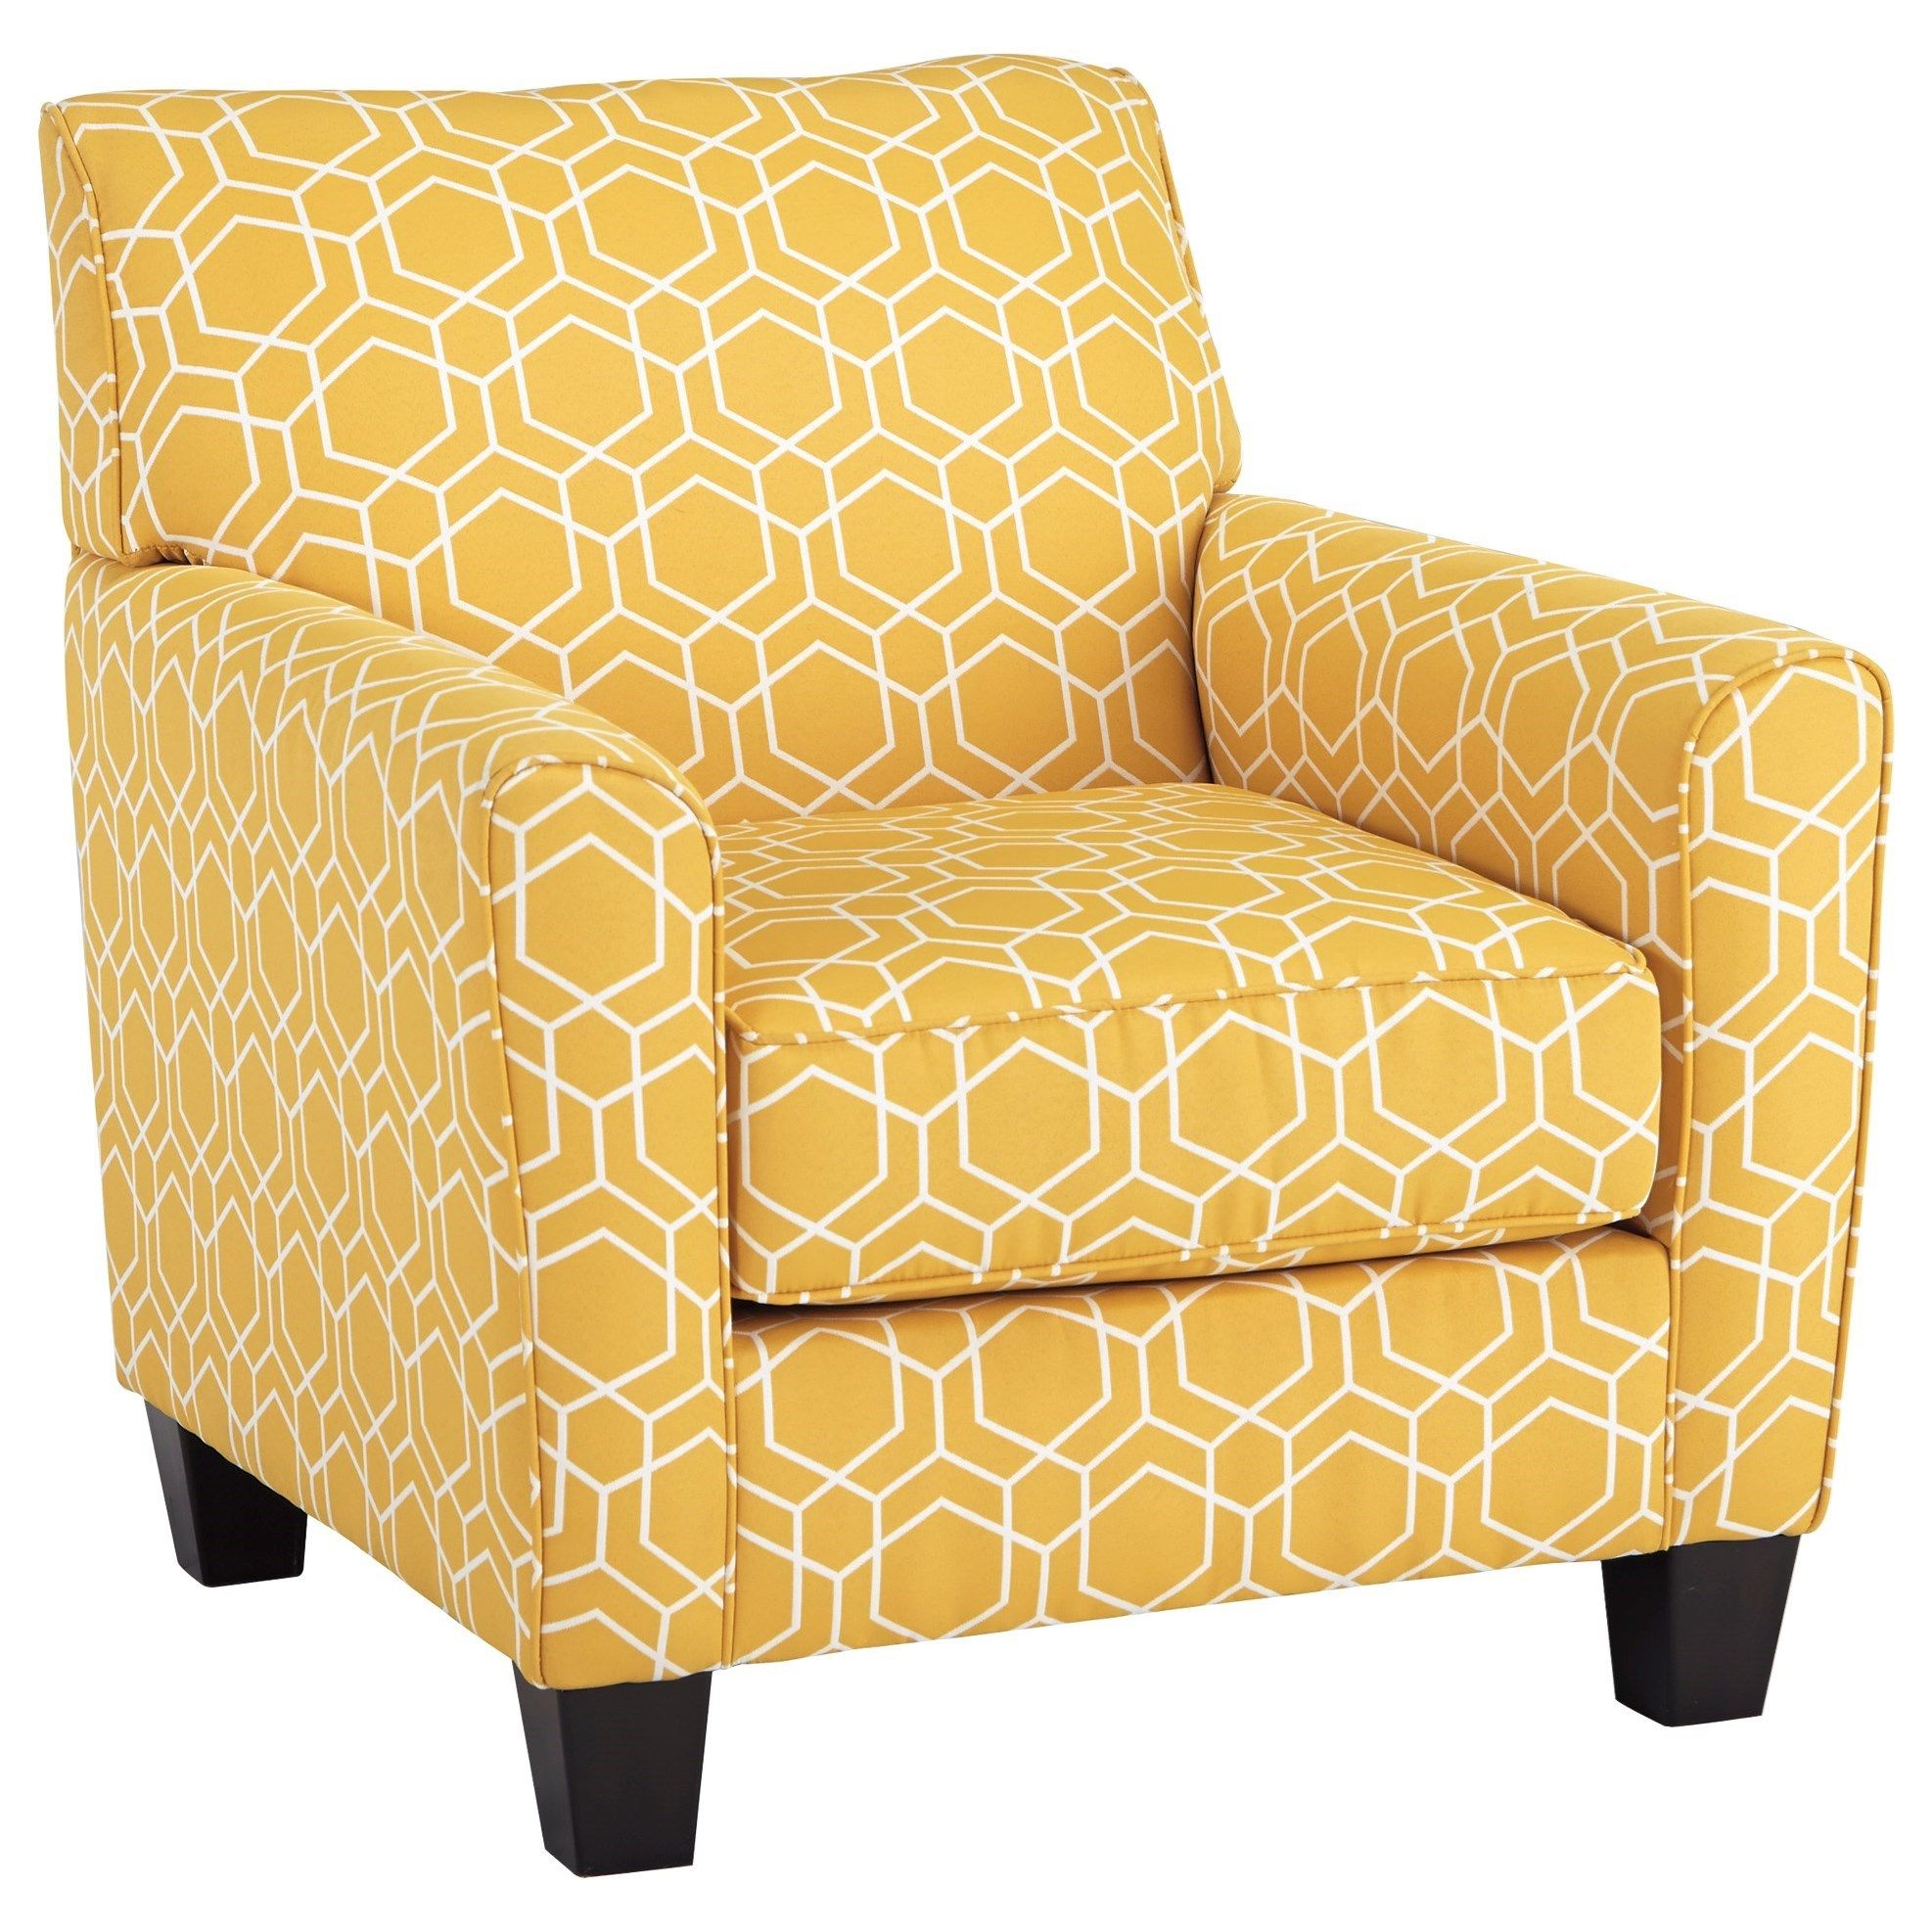 Ayanna Nuvella Accent Chair By Benchcraft At Del Sol Furniture Yellow Accent Chairs